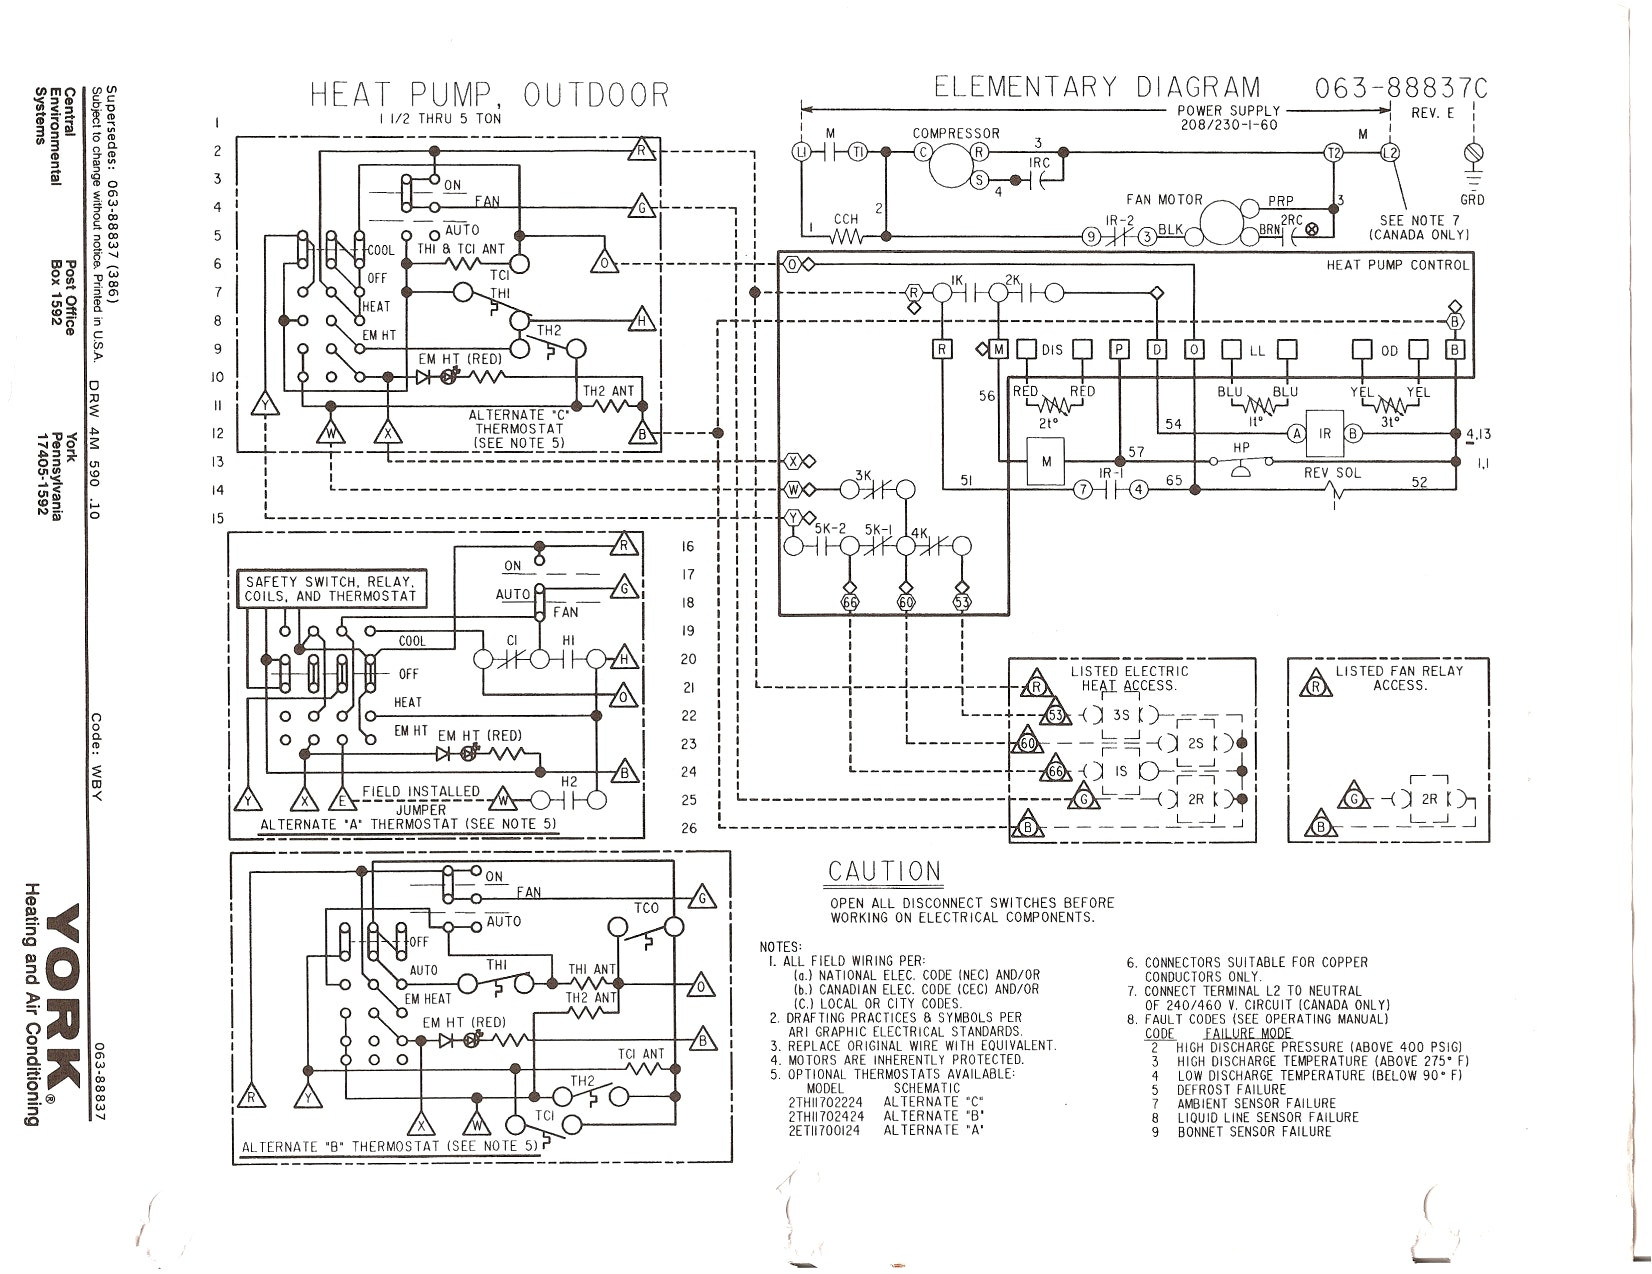 ruud heat pump thermostat wiring diagram Collection-Ruud Thermostat Wiring Diagram Gooddy Org Also For With Heat Pump 4-r